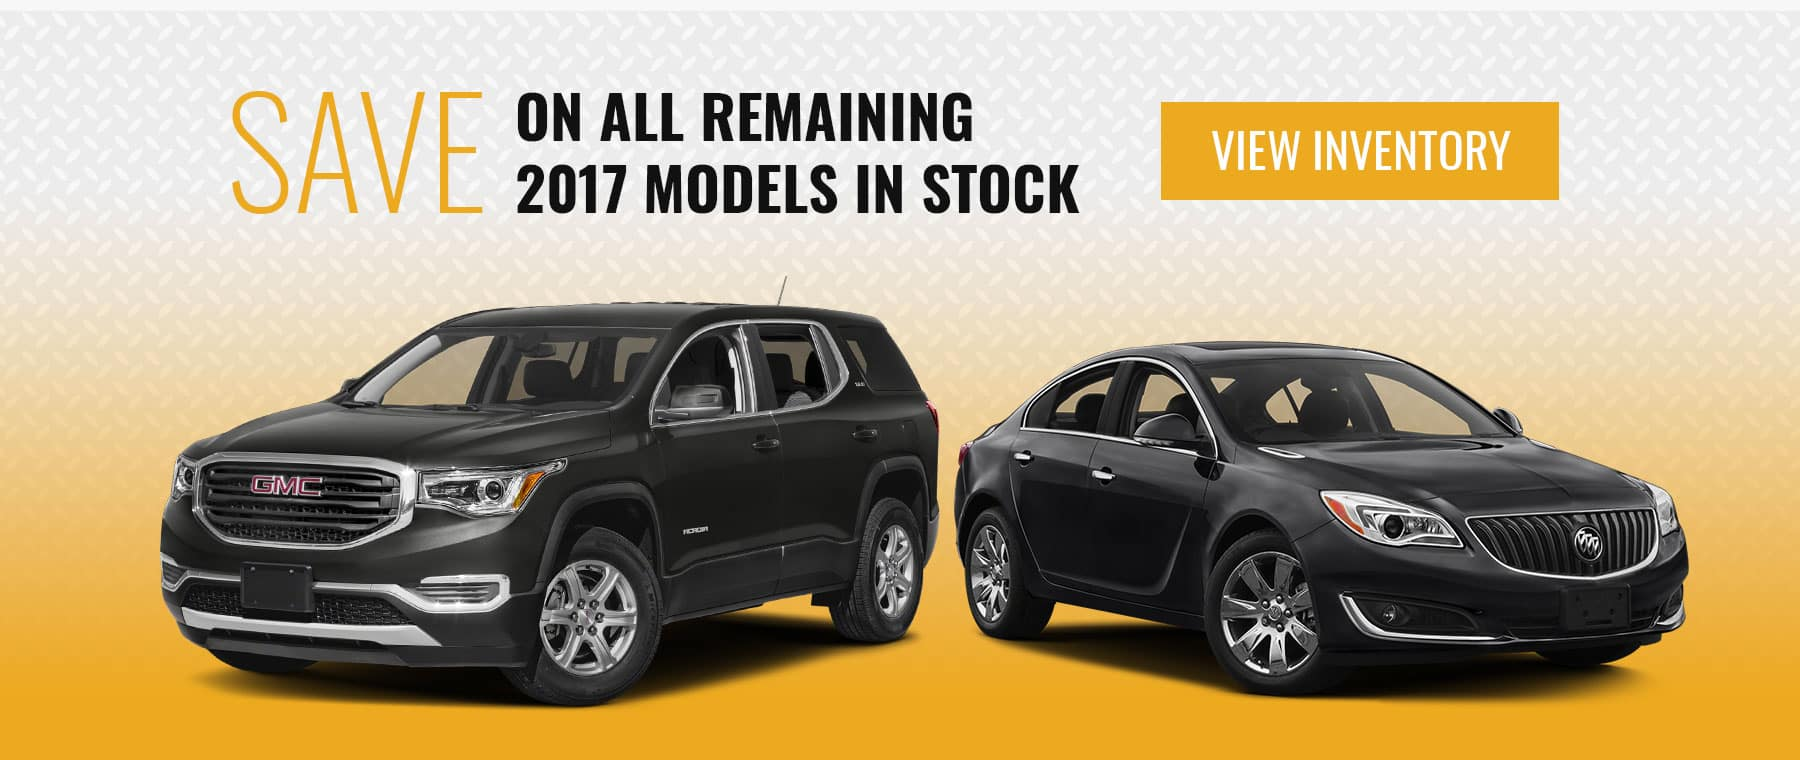 Herb Jones Chevrolet Buick Gmc Dealer In Remote Starter 2015 Shevi Suburban Autos Post Pricing Listed On This Website Reflects All Discounts And Rebates That Are Available Some Offers May Not Combine With Other